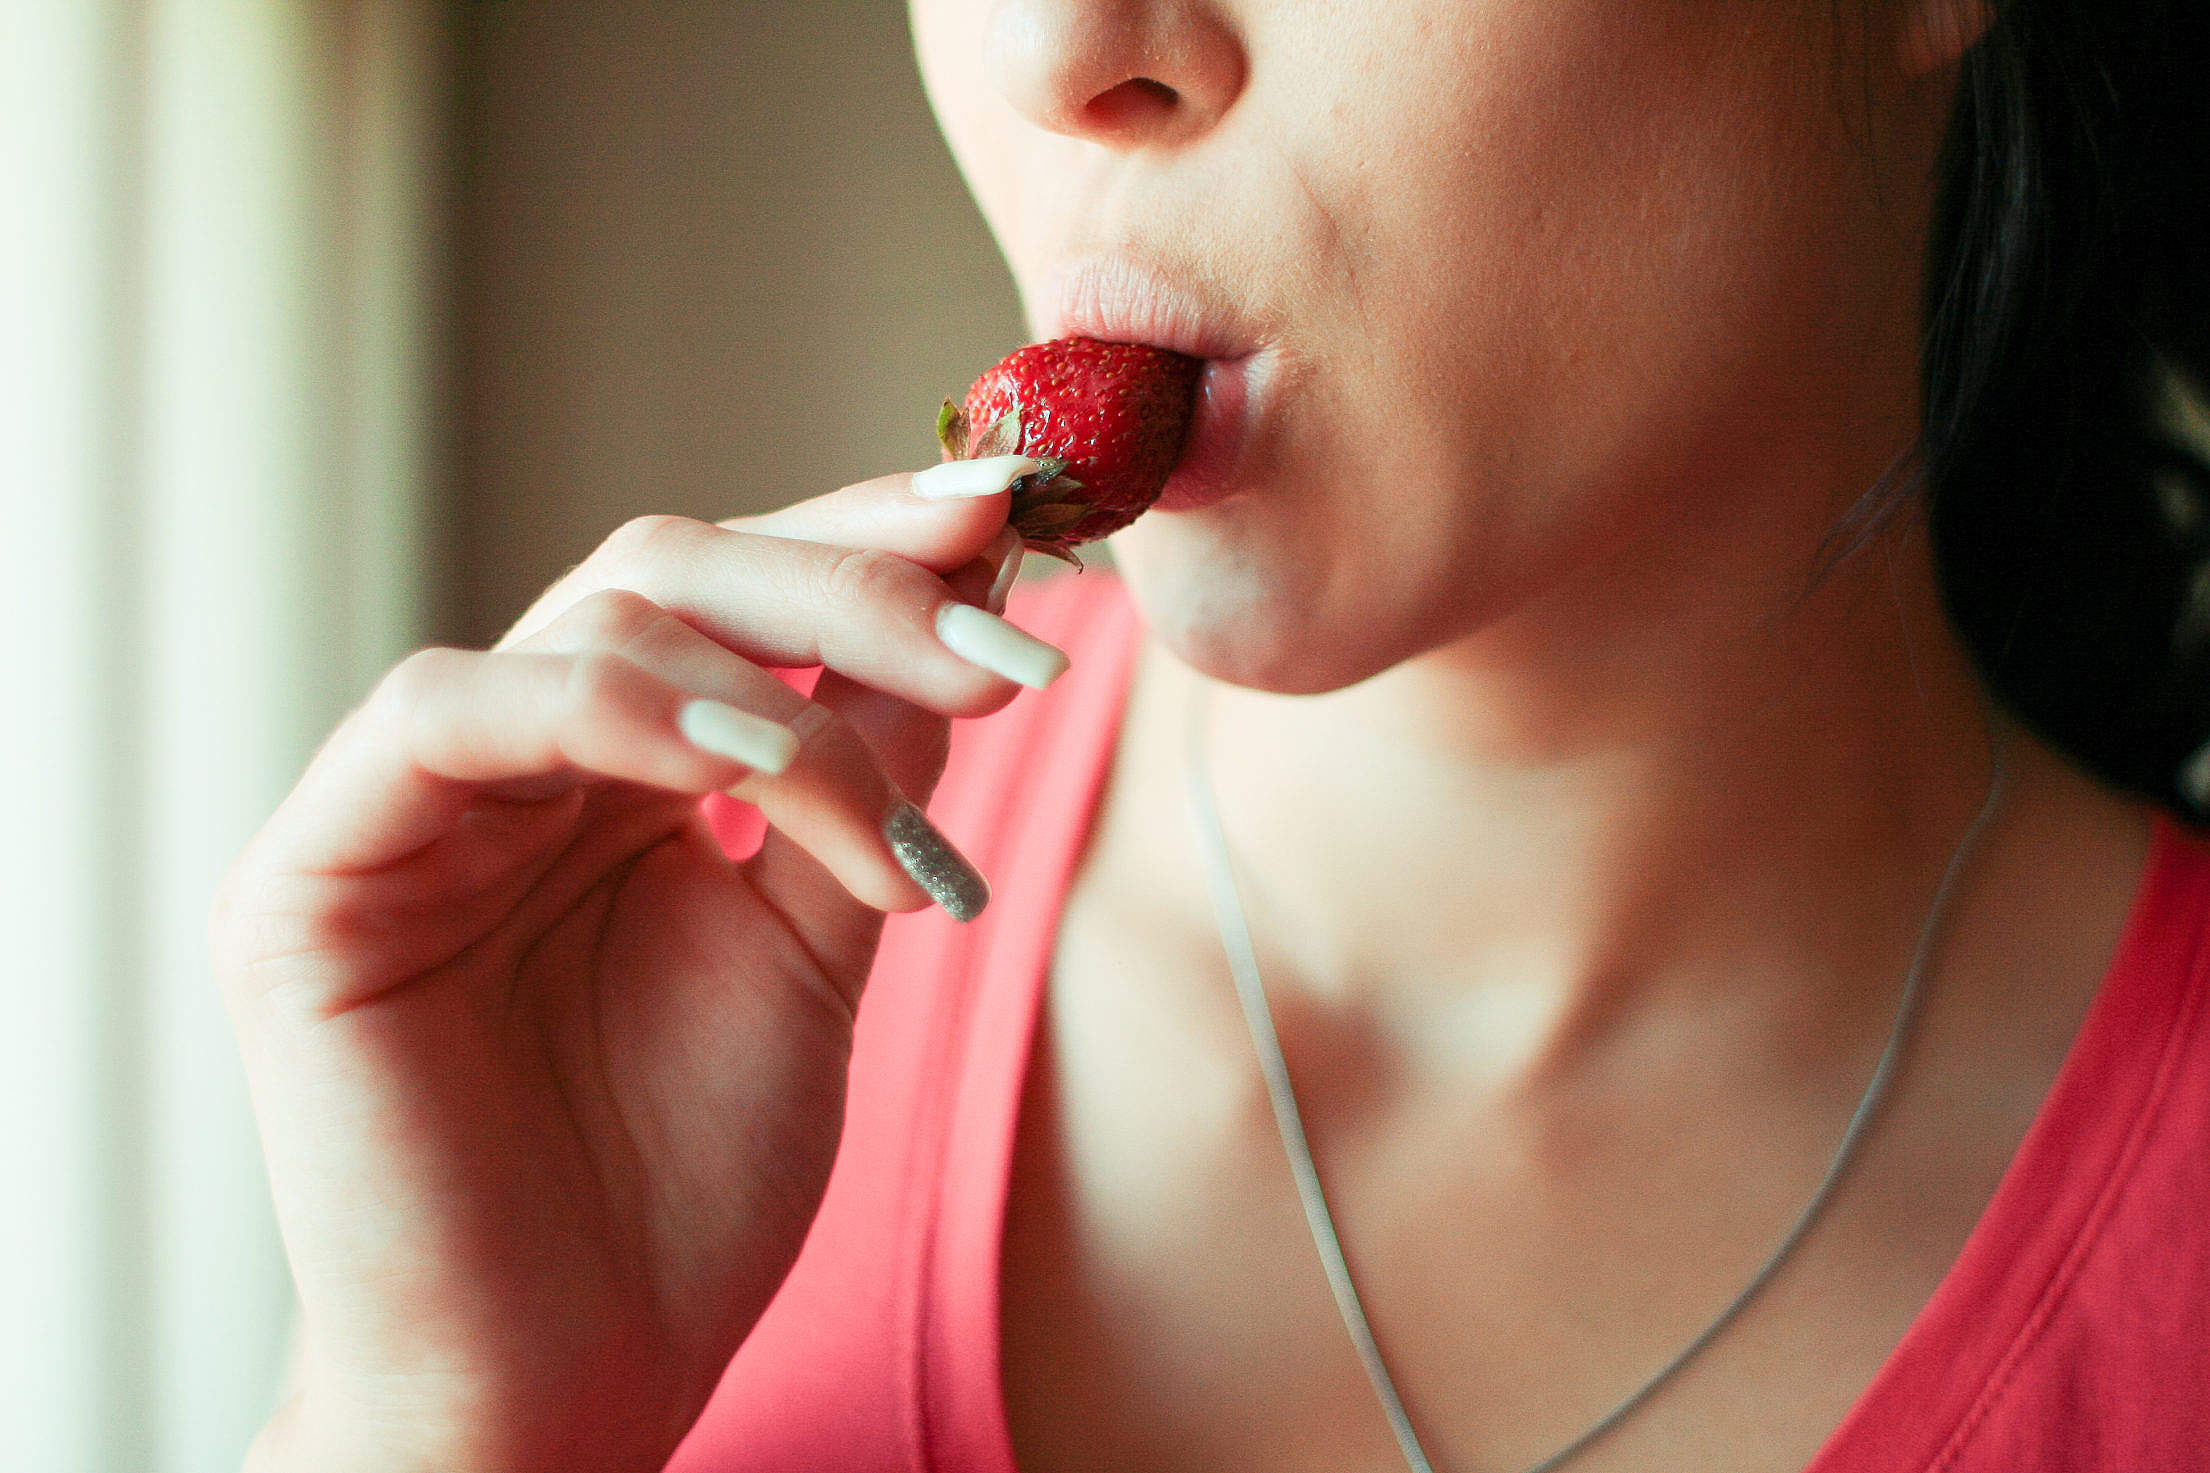 Taste That Strawberry! Free Stock Photo